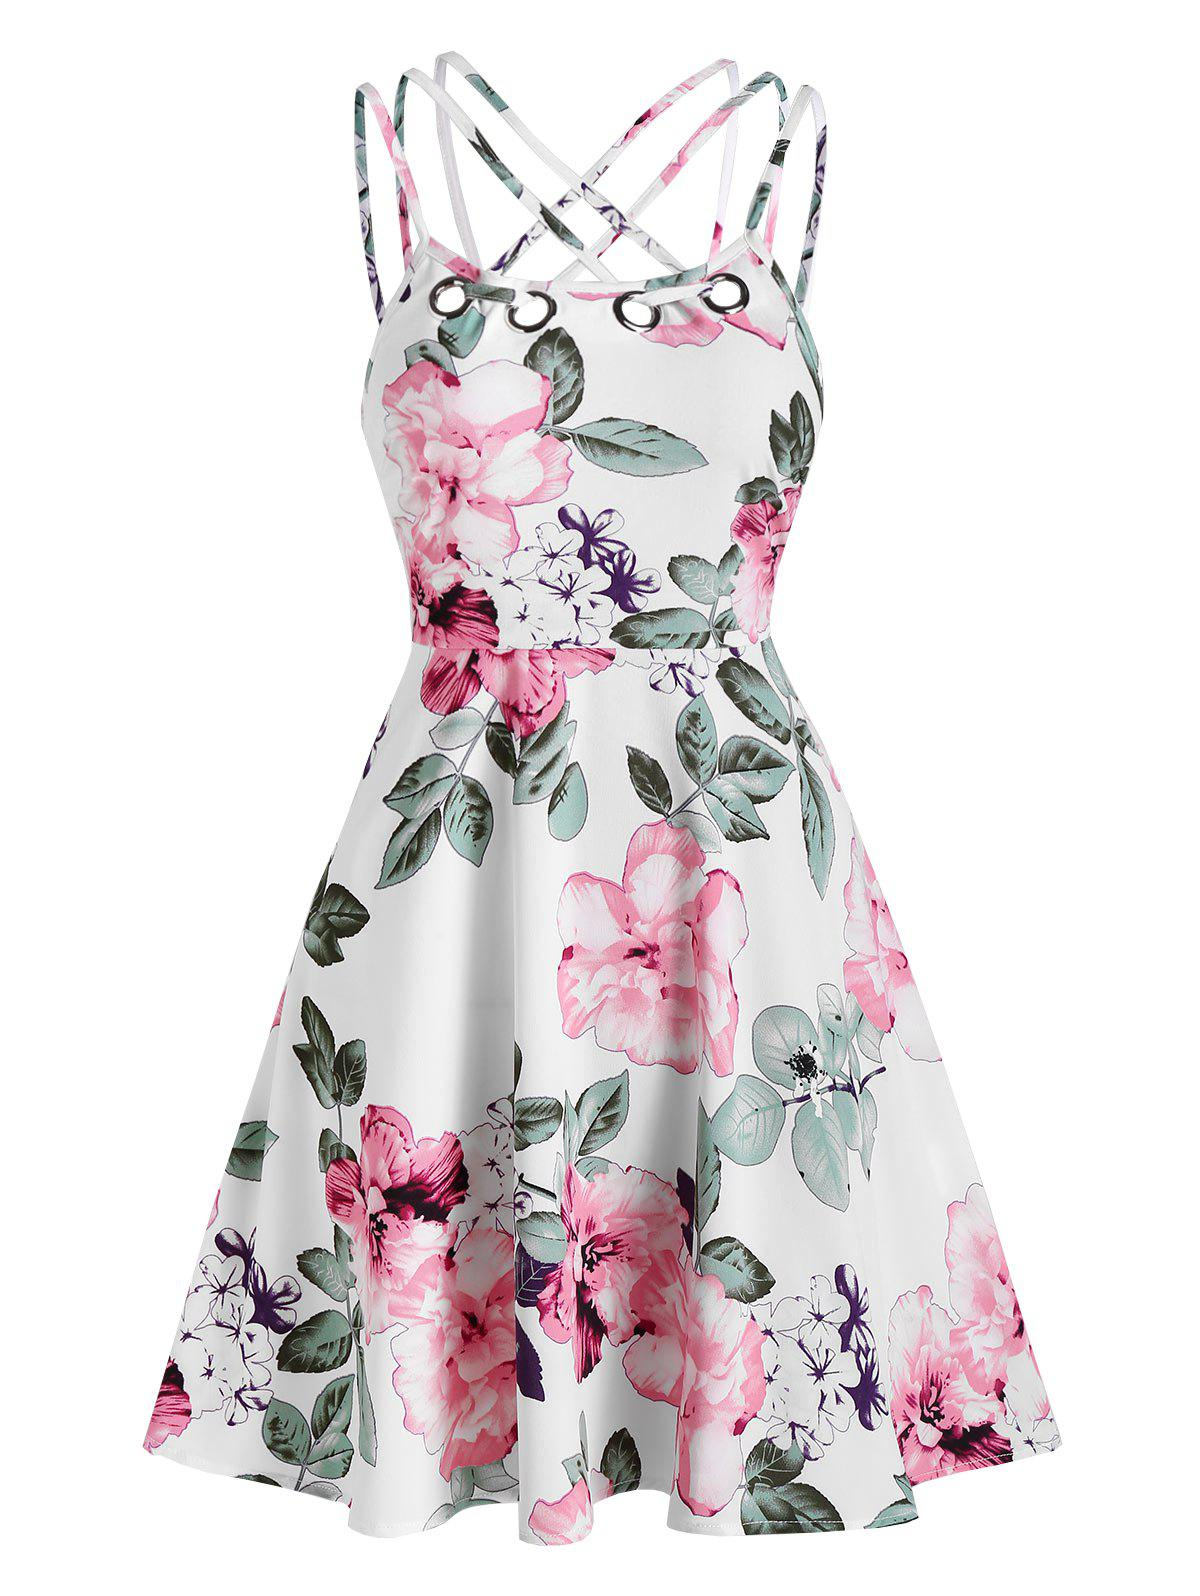 Floral Print High Waist A Line Dress - WHITE M